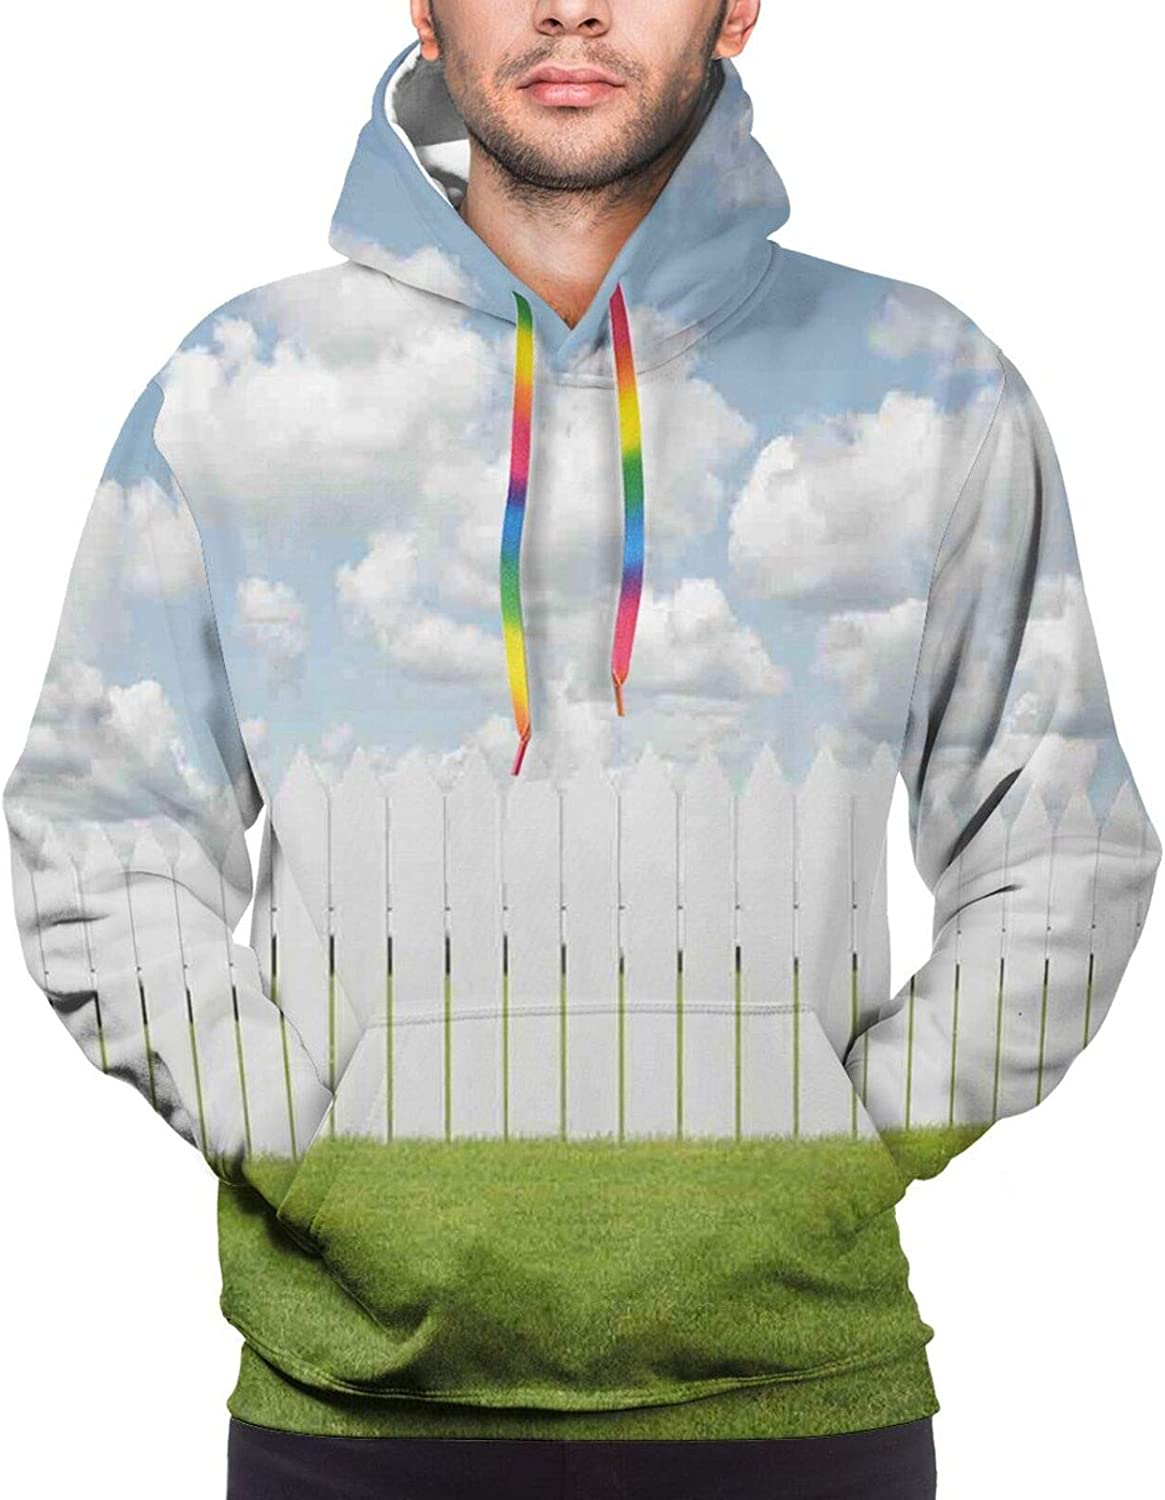 Men's Hoodies Sweatshirts,Exquisite Old Historical Town Paint with Impressionist Influences Winter Image